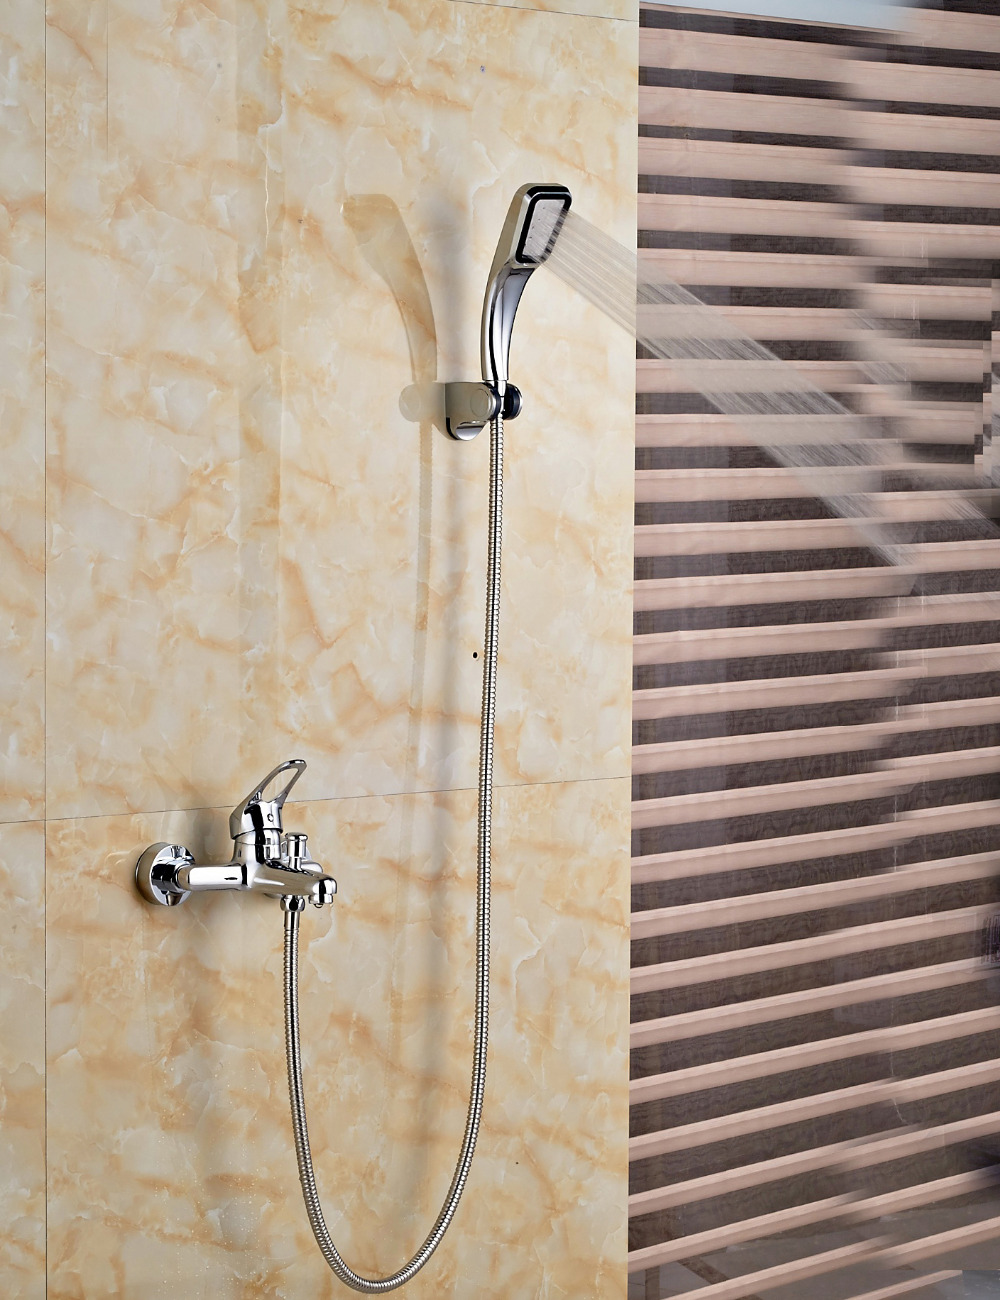 Wholesale And Retail Polished Chrome Finish Bathroom Tub Faucet Wall Mounted Shower Hand Sprayer Single Handle Valve wholesale and retail wall mounted thermostatic valve mixer tap shower faucet 8 sprayer hand shower